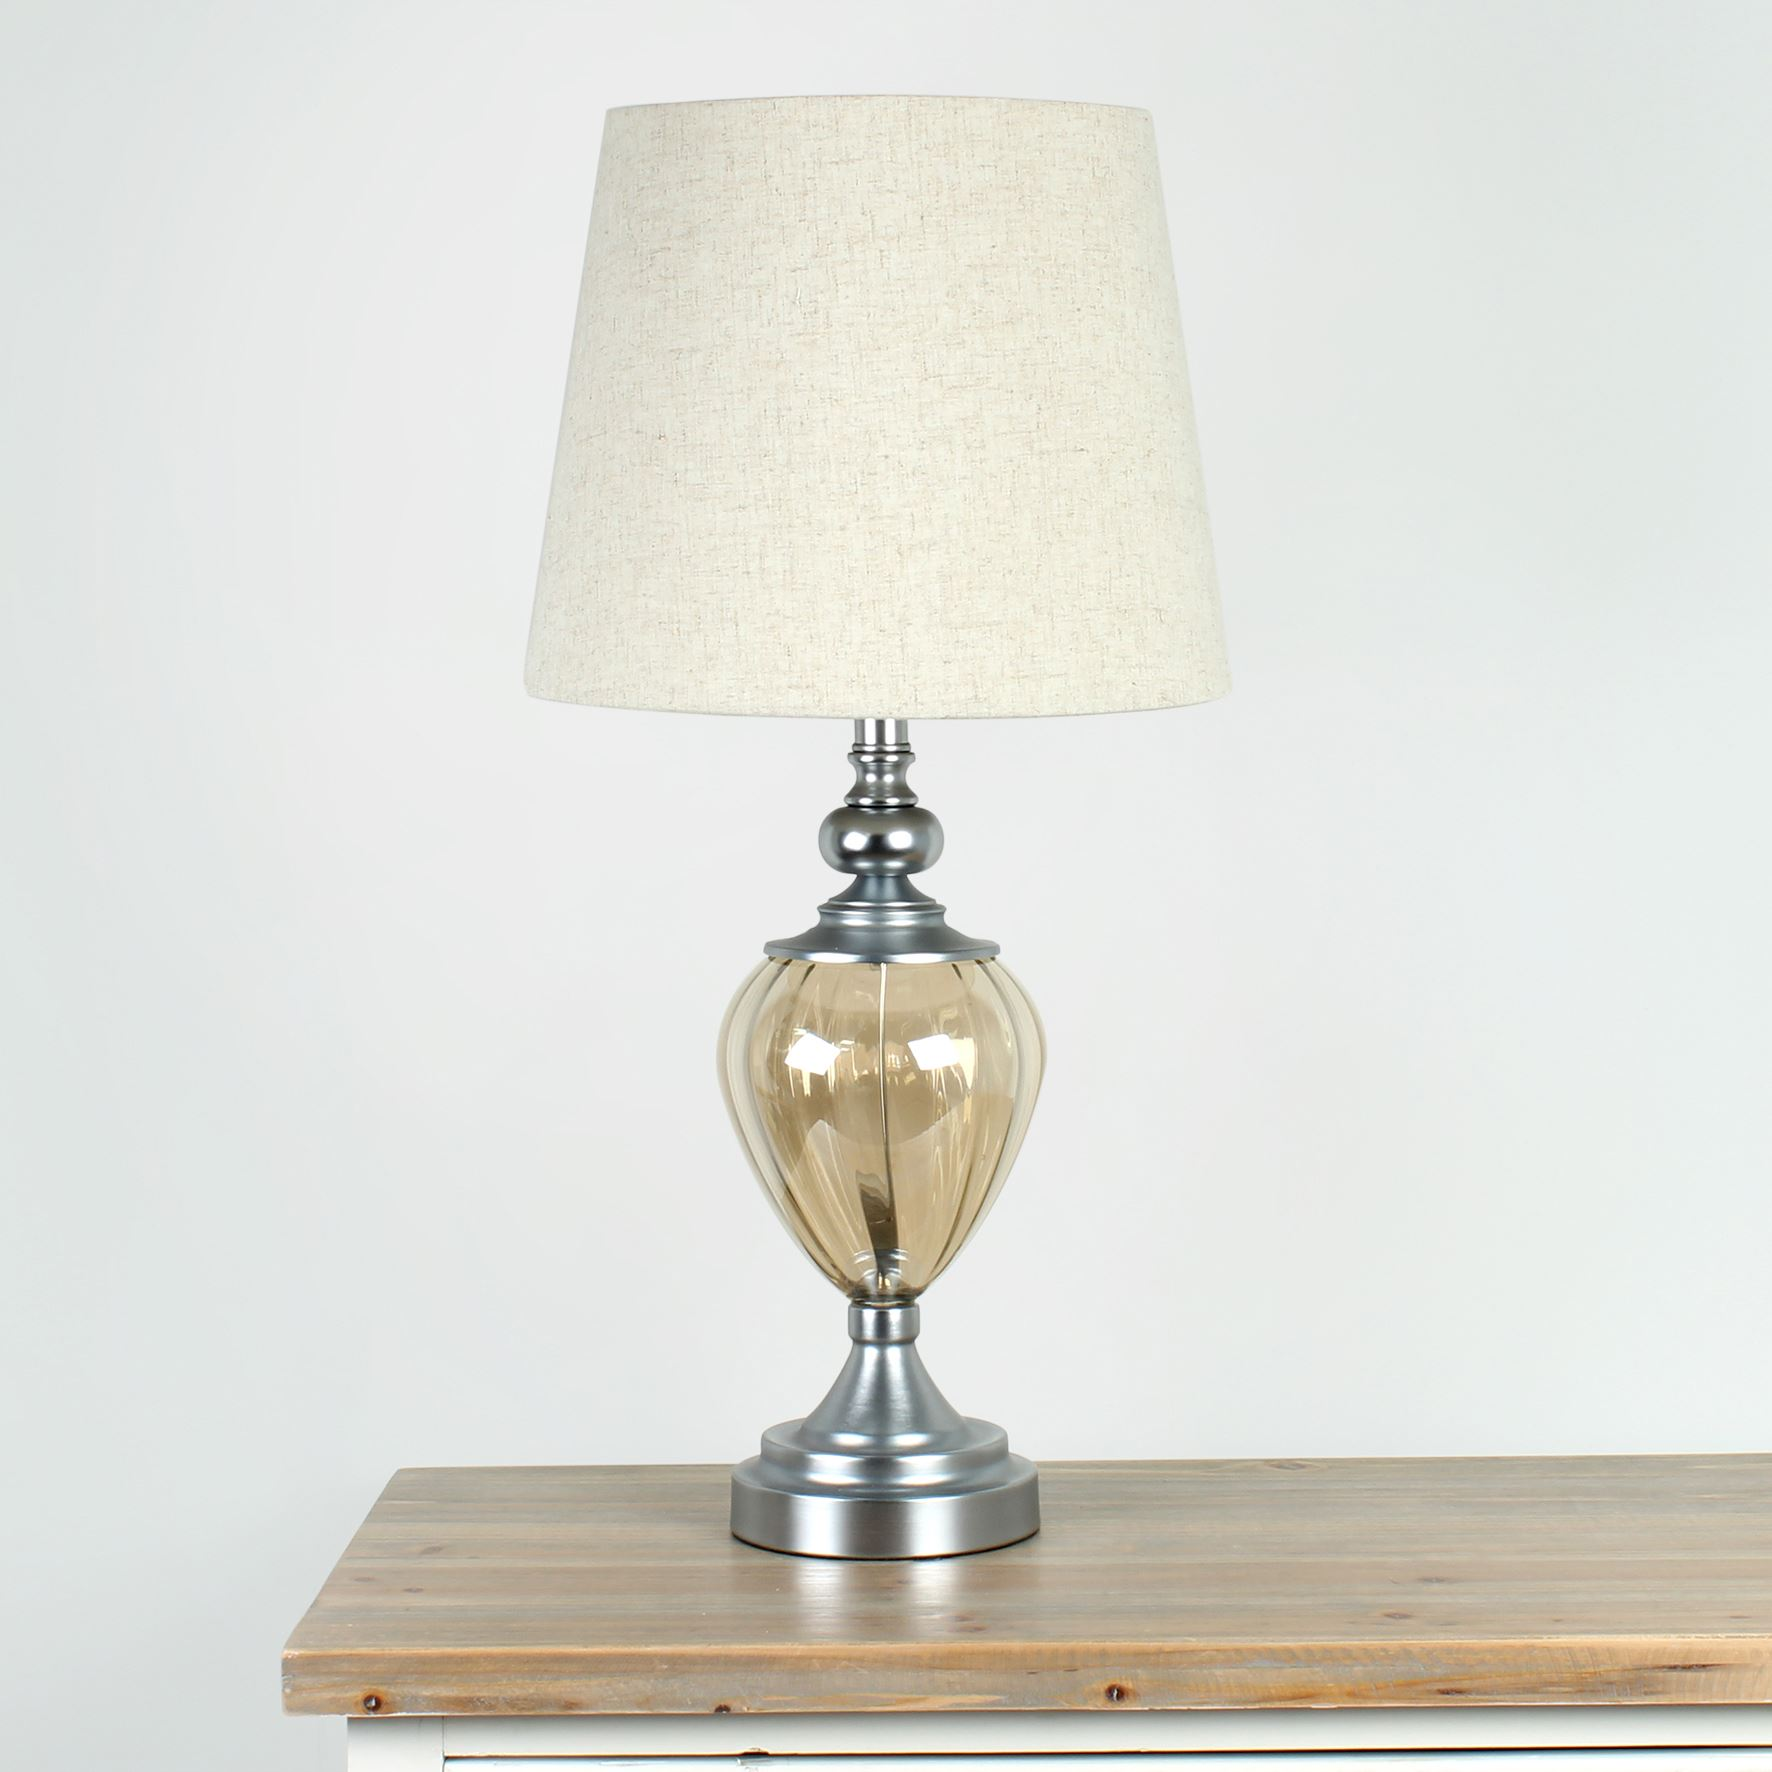 Hestia Table Lamp w/ Metal Base & White Shade